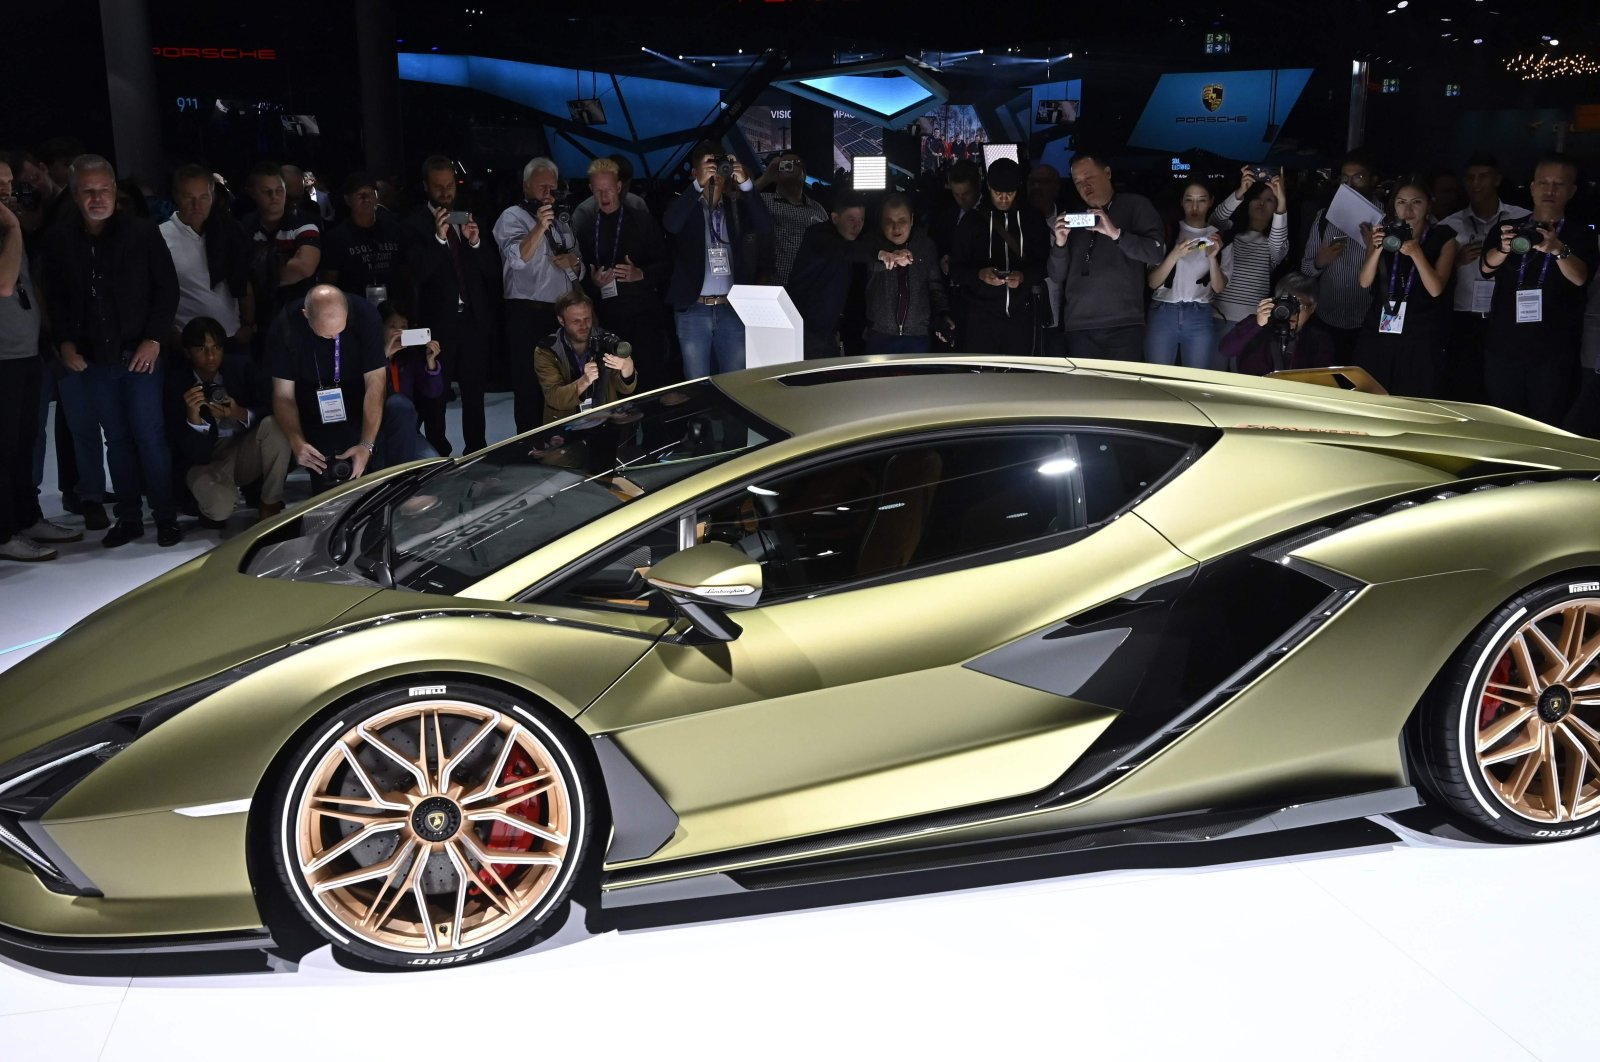 People look at a Lamborghini Sian Hybrid Car during a press day at the IAA Car Show in Frankfurt, Germany, Sept. 10, 2019. (AFP Photo)